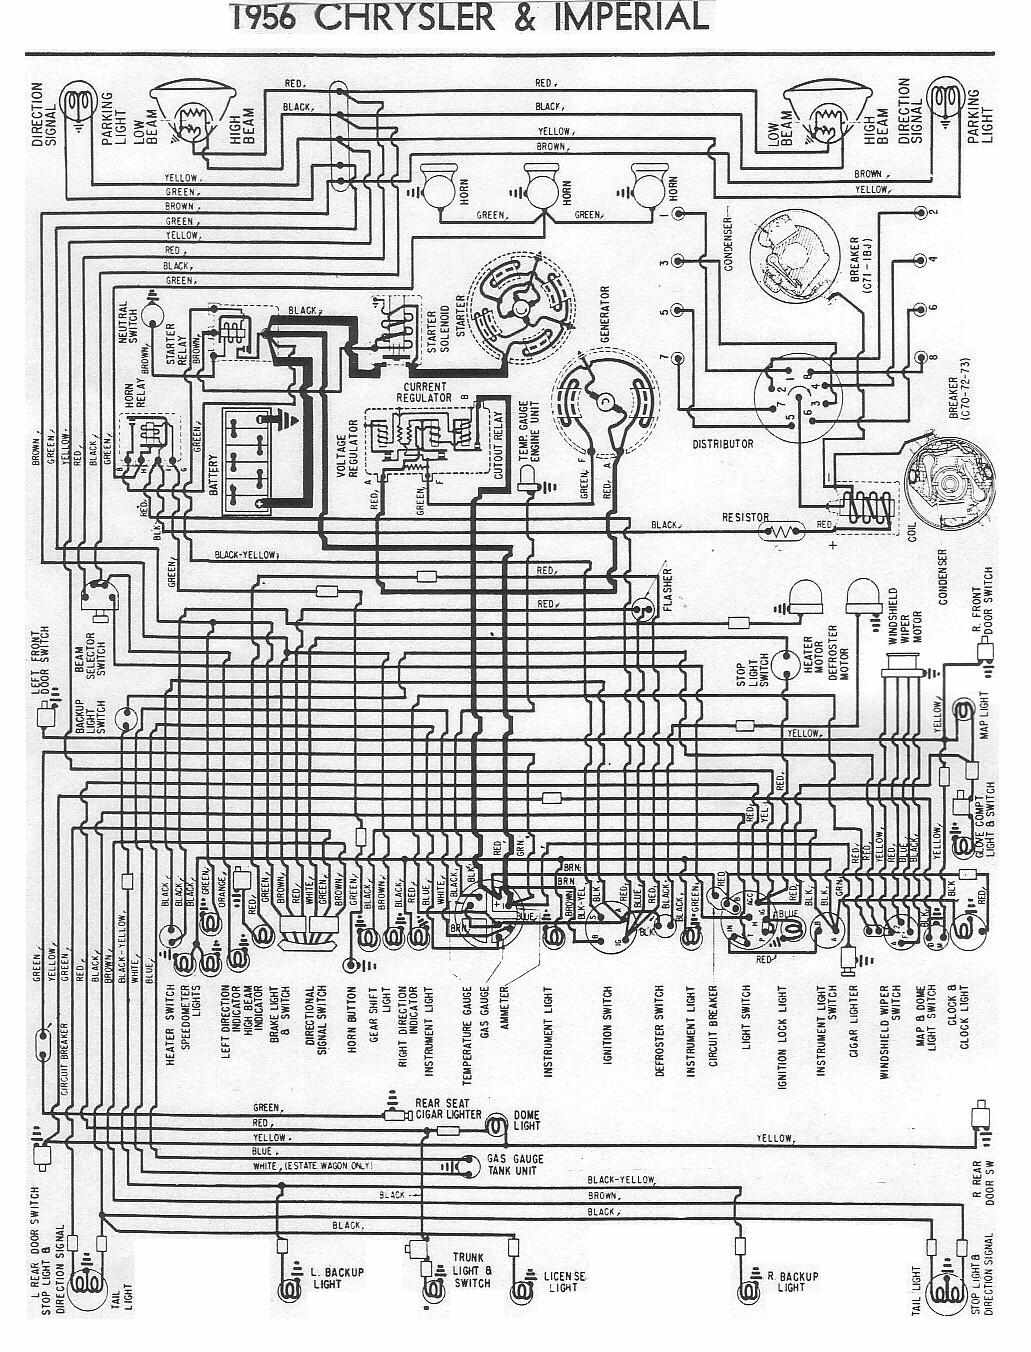 powerflite wiring diagram wiring diagram list1958 imperial wiring diagram wiring diagram fascinating powerflite wiring diagram [ 1031 x 1352 Pixel ]